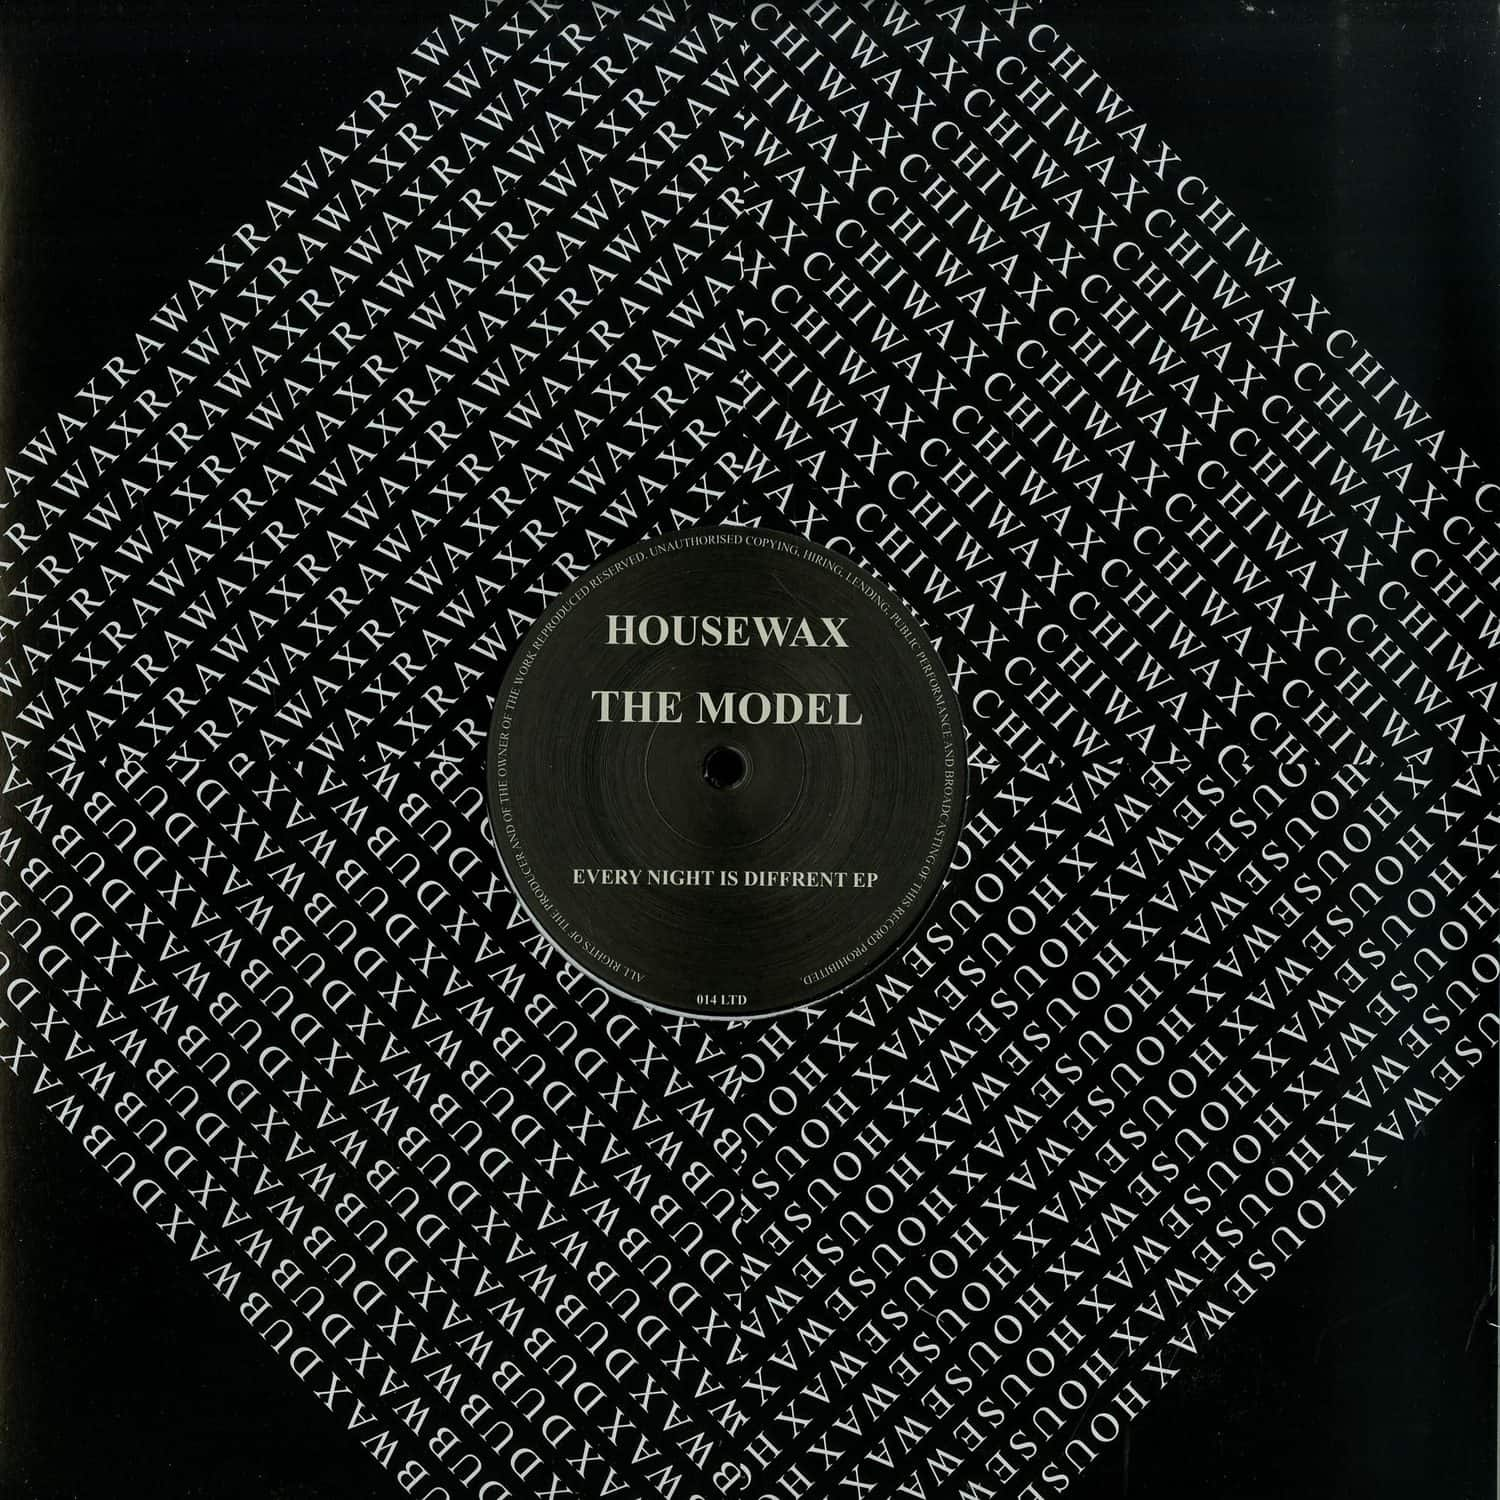 The Model - EVERY NIGHT IS DIFFERENT EP